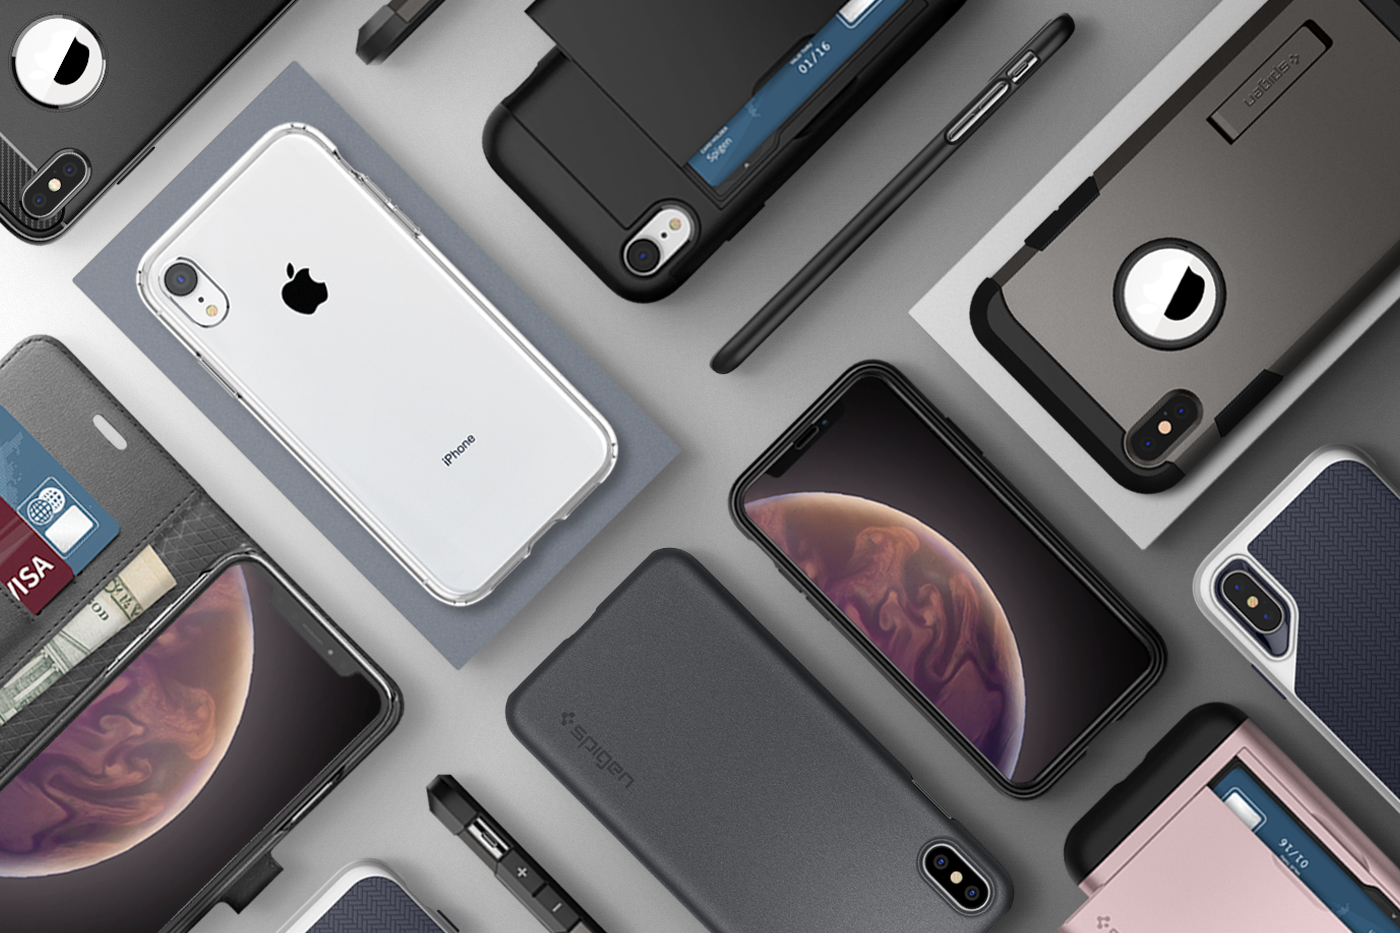 official photos cee94 74b41 Spigen's popular case line arrives for iPhone XS, XS Max, & XR - 9to5Mac